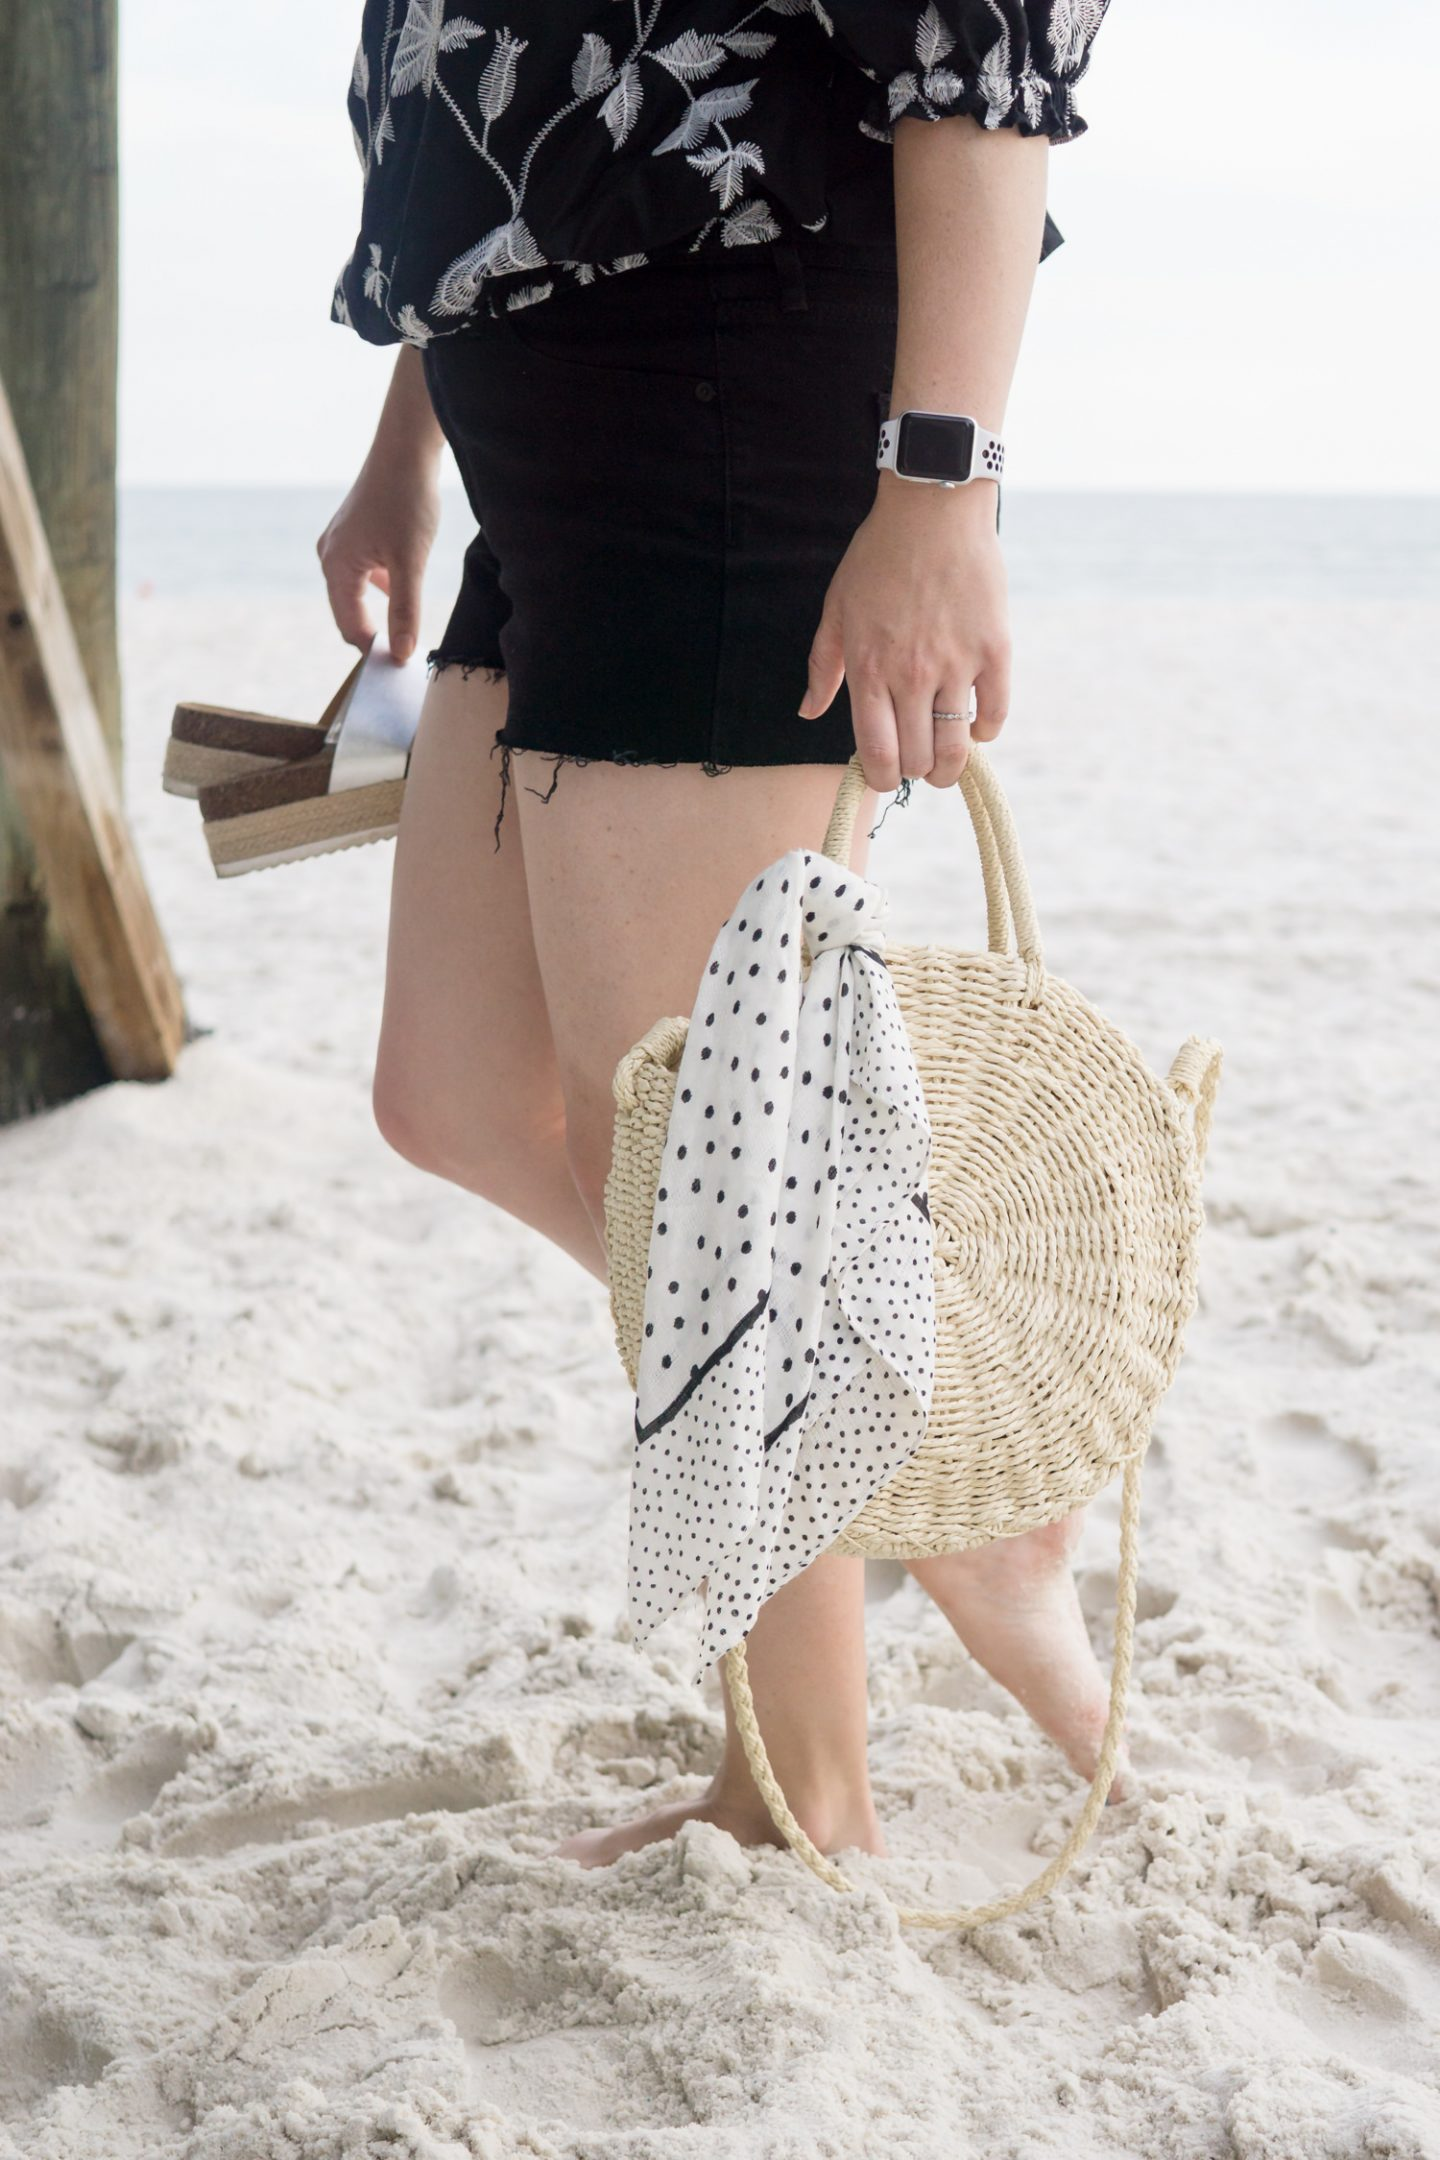 Beach Style for the Girl that Likes to Wear Black // Miss Molly Moon